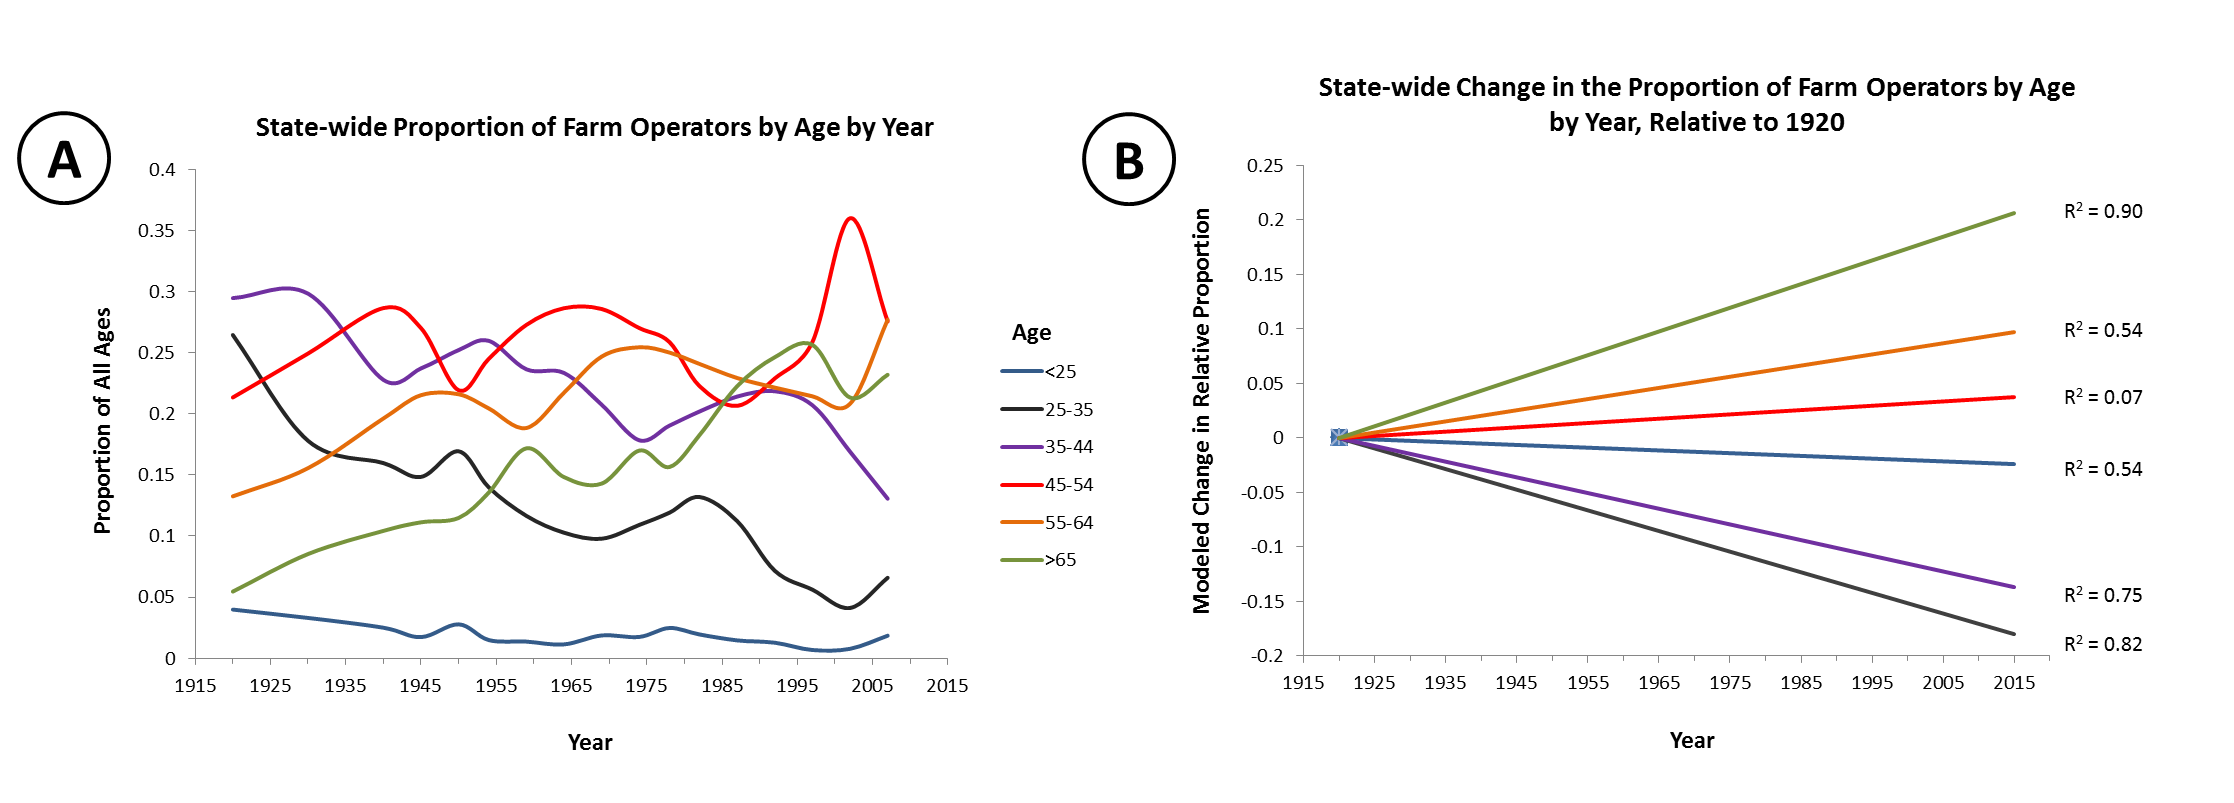 "Figure A (left) illustrates the average age for each age class across the entire state. In Figure B (right) the underlying trend for each of those age classes is modeled using linear least-squares regression, with respect to each class' proportion in 1920. Each regression model can be coarsely evaluated using Pearson's correlation coefficient (R2, -1 to 1 scale). Where -1 and 1 indicate perfect agreement between variables on the horizontal and vertical axes, we can evaluate the degree to which time explains the variability in proportions. The high R2 for operators 65 and older indicates that a linear regression model is appropriate for this age class, while the low R2 for ages 45-54 suggests that time alone cannot easily predict the proportion of this class. "" width=""830"" height=""283"" class=""size-large wp-image-2005"" /> Figure A (left) illustrates the average age for each age class across the entire state. In Figure B (right) the underlying trend for each of those age classes is modeled using linear least-squares regression, with respect to each class' proportion in 1920. Each regression model can be coarsely evaluated using Pearson's correlation coefficient (R2, -1 to 1 scale). Where -1 and 1 indicate perfect agreement between variables on the horizontal and vertical axes, we can evaluate the degree to which time explains the variability in proportions. The high R2 for operators 65 and older indicates that a linear regression model is appropriate for this age class, while the low R2 for ages 45-54 suggests that time alone cannot easily predict the proportion of this class."